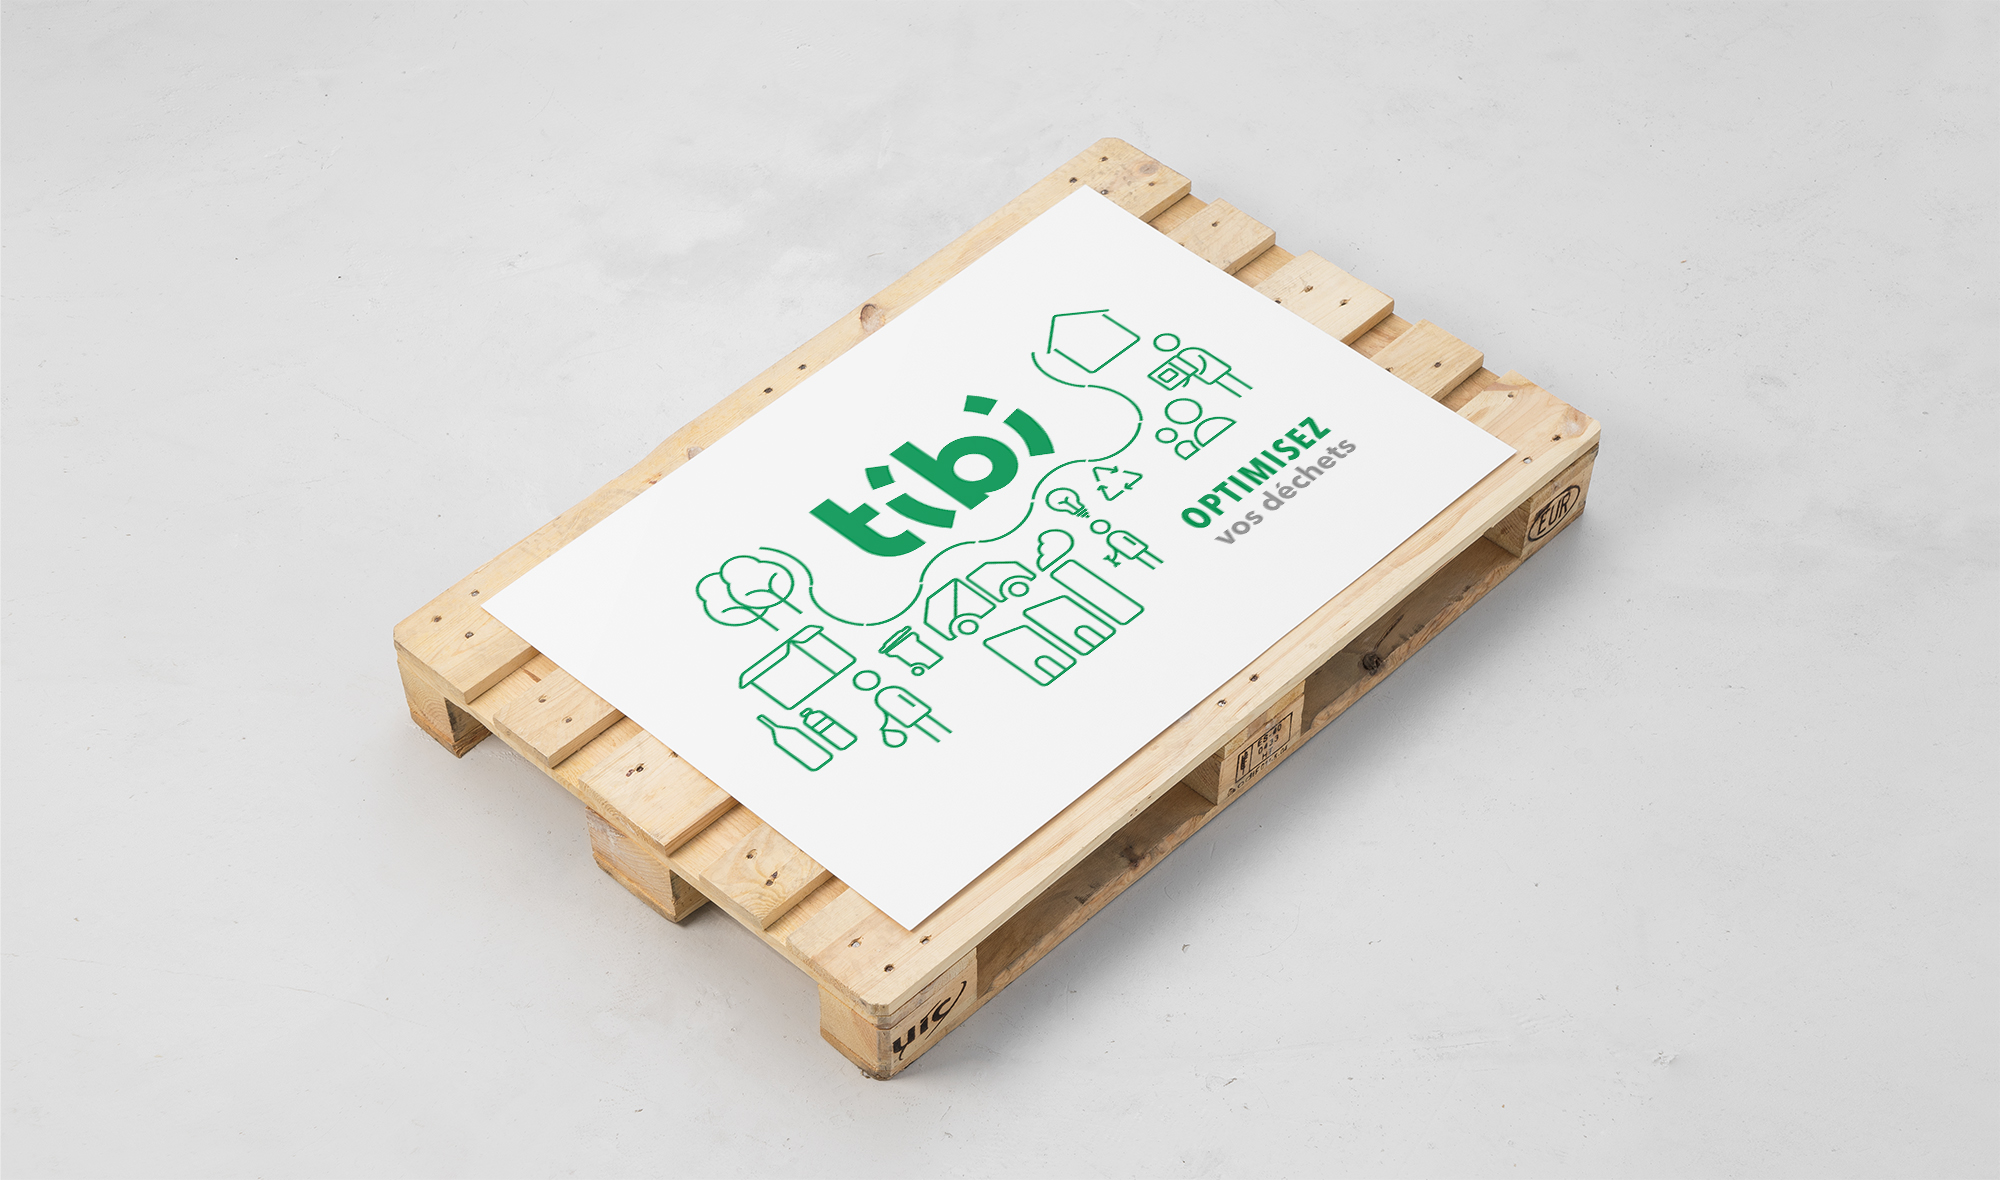 Tibi-Renewing recycling.